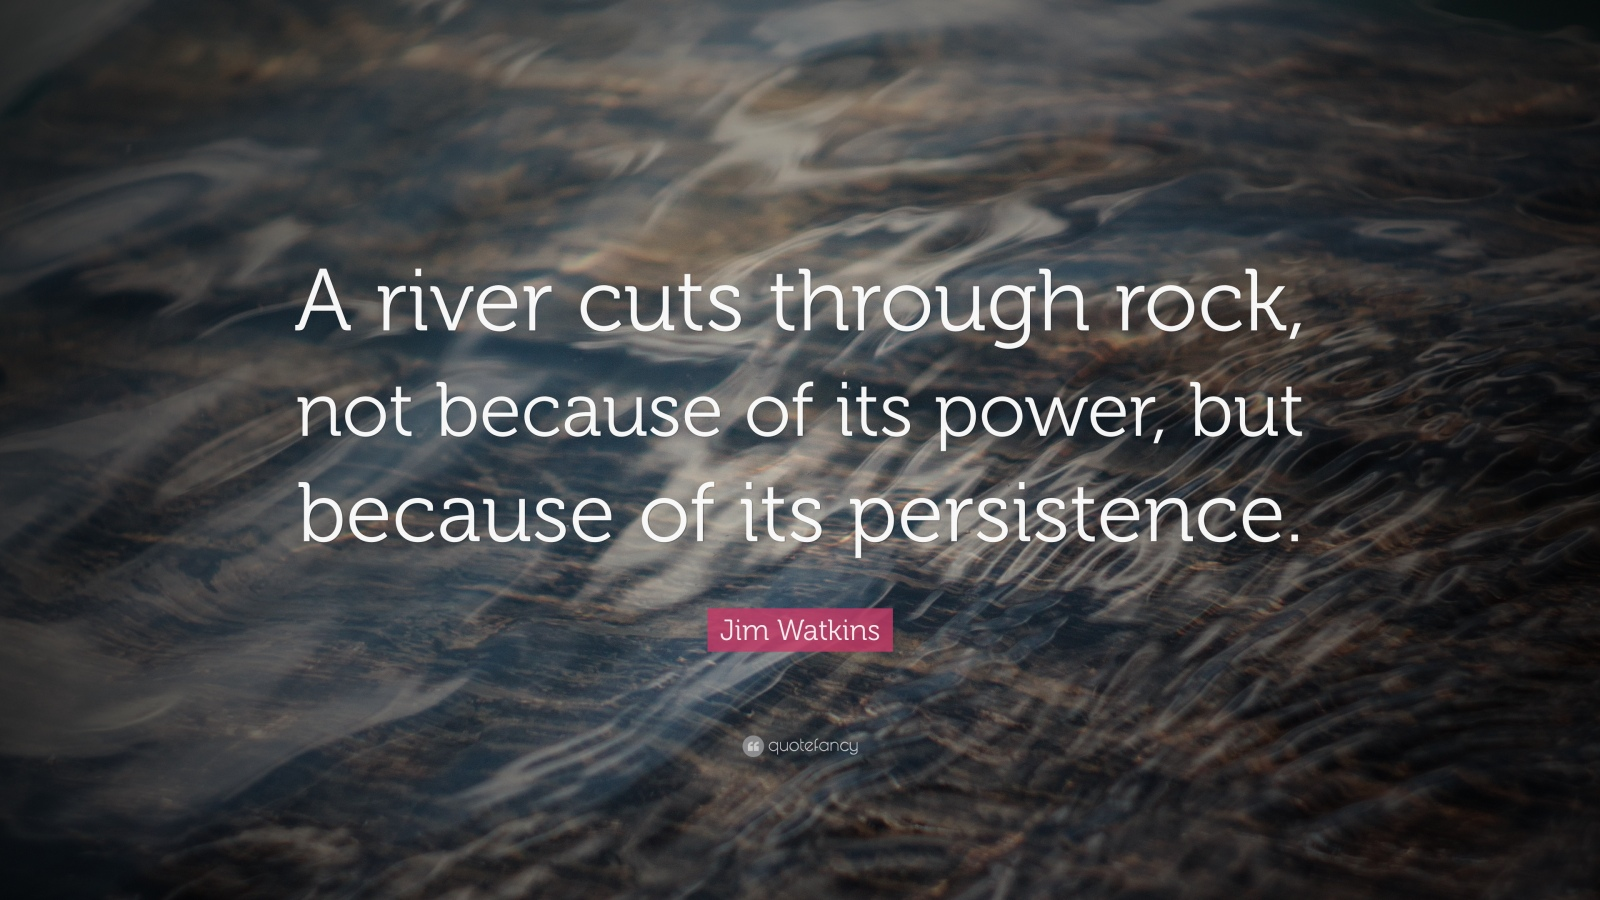 A river cuts through rock, not because of it's power, because of it's persistence